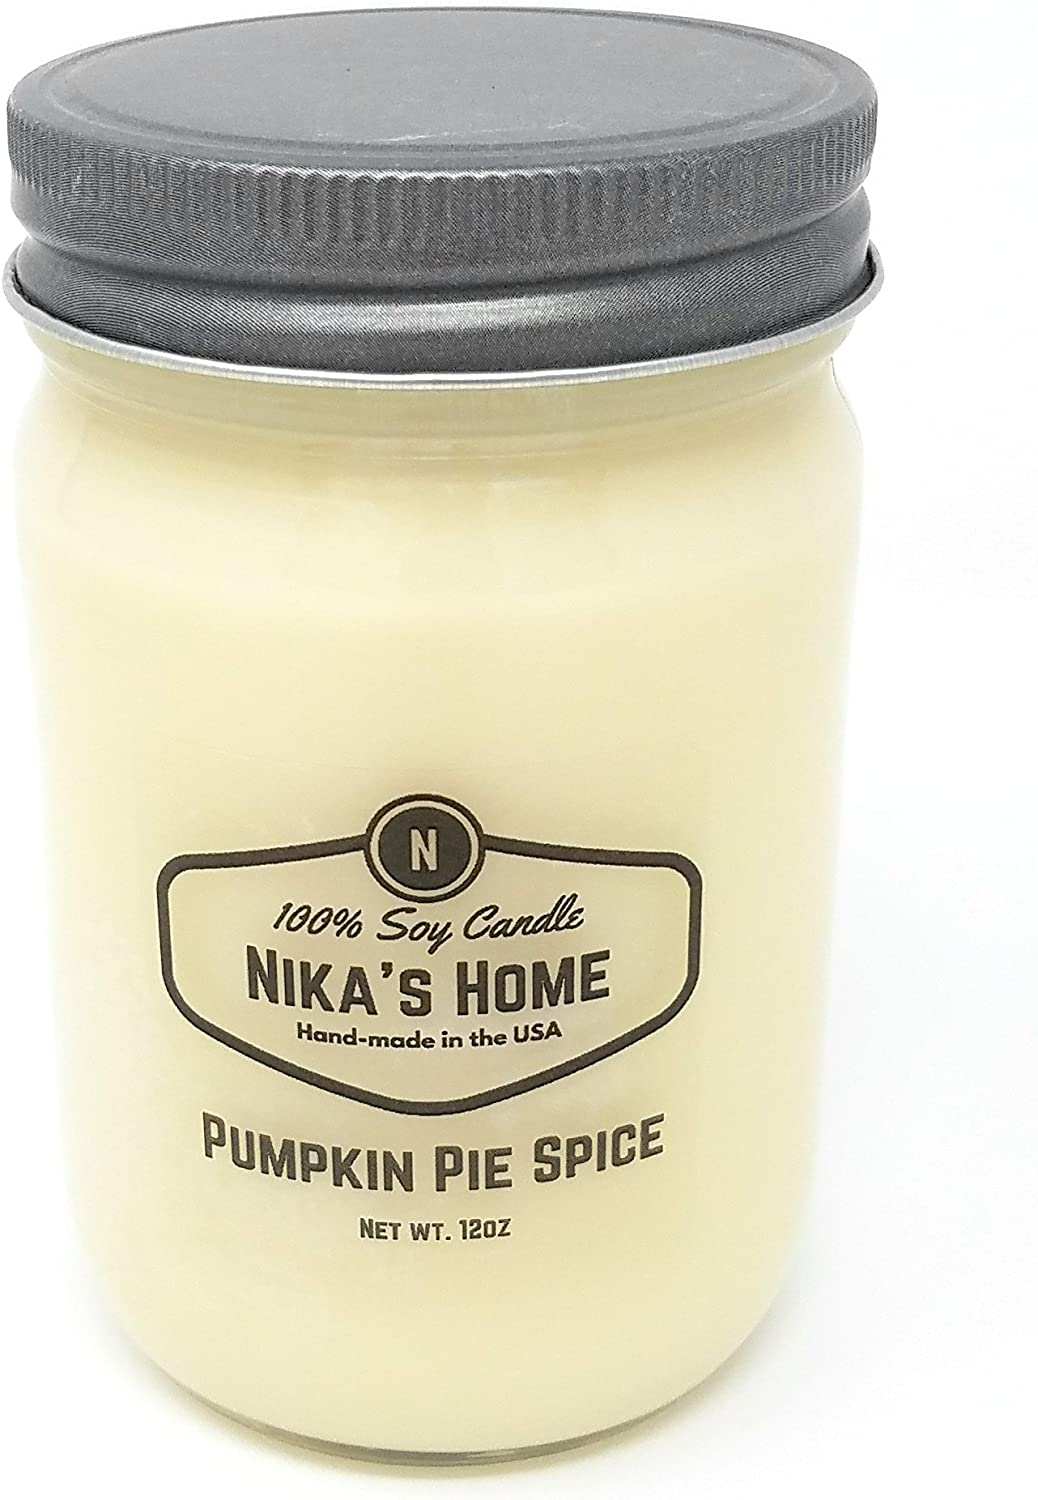 Nika's Home Pumpkin Pie Spice Soy Candle - 12oz Mason Jar